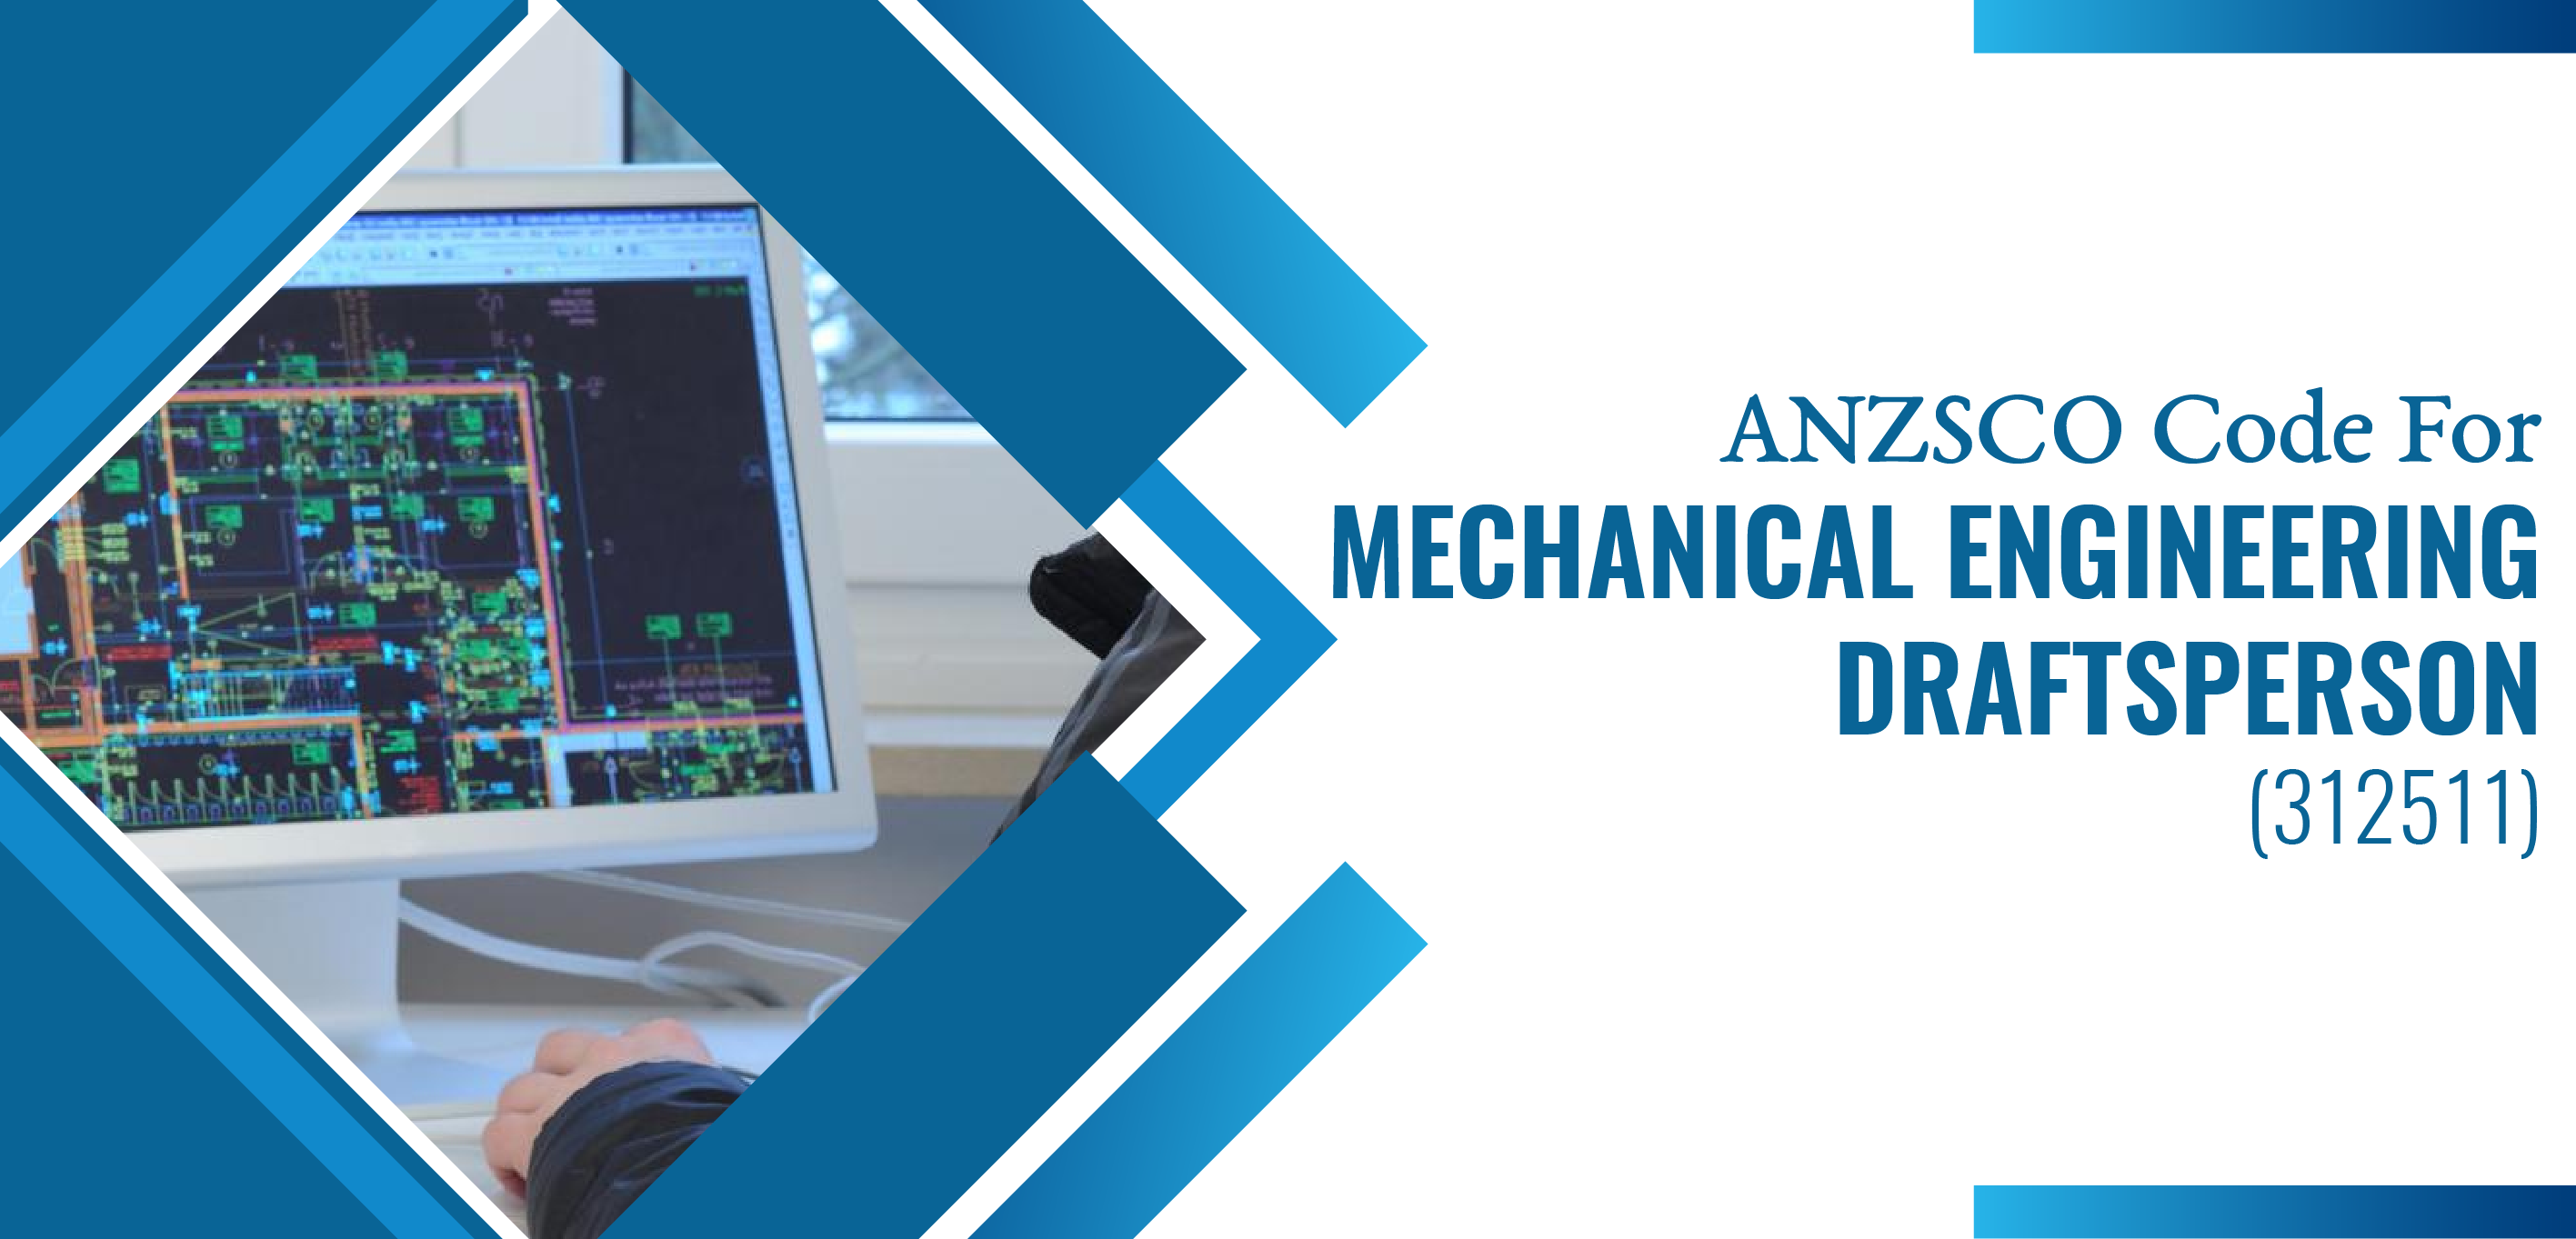 Mechanical Engineering Draftsperson ANZSCO